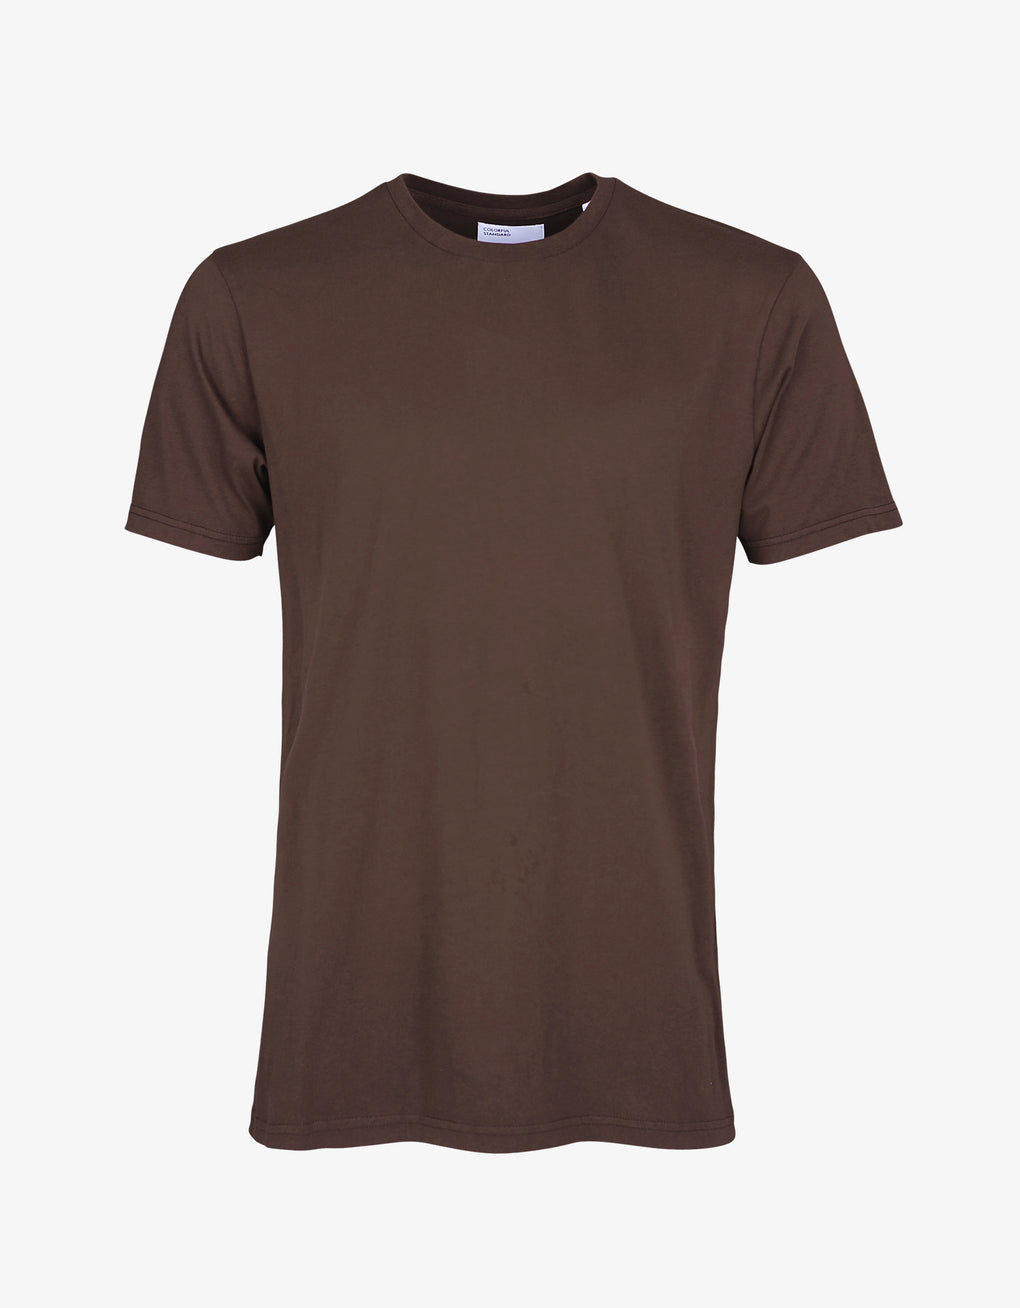 Colorful Standard Classic Organic Tee T-shirt Coffee Brown